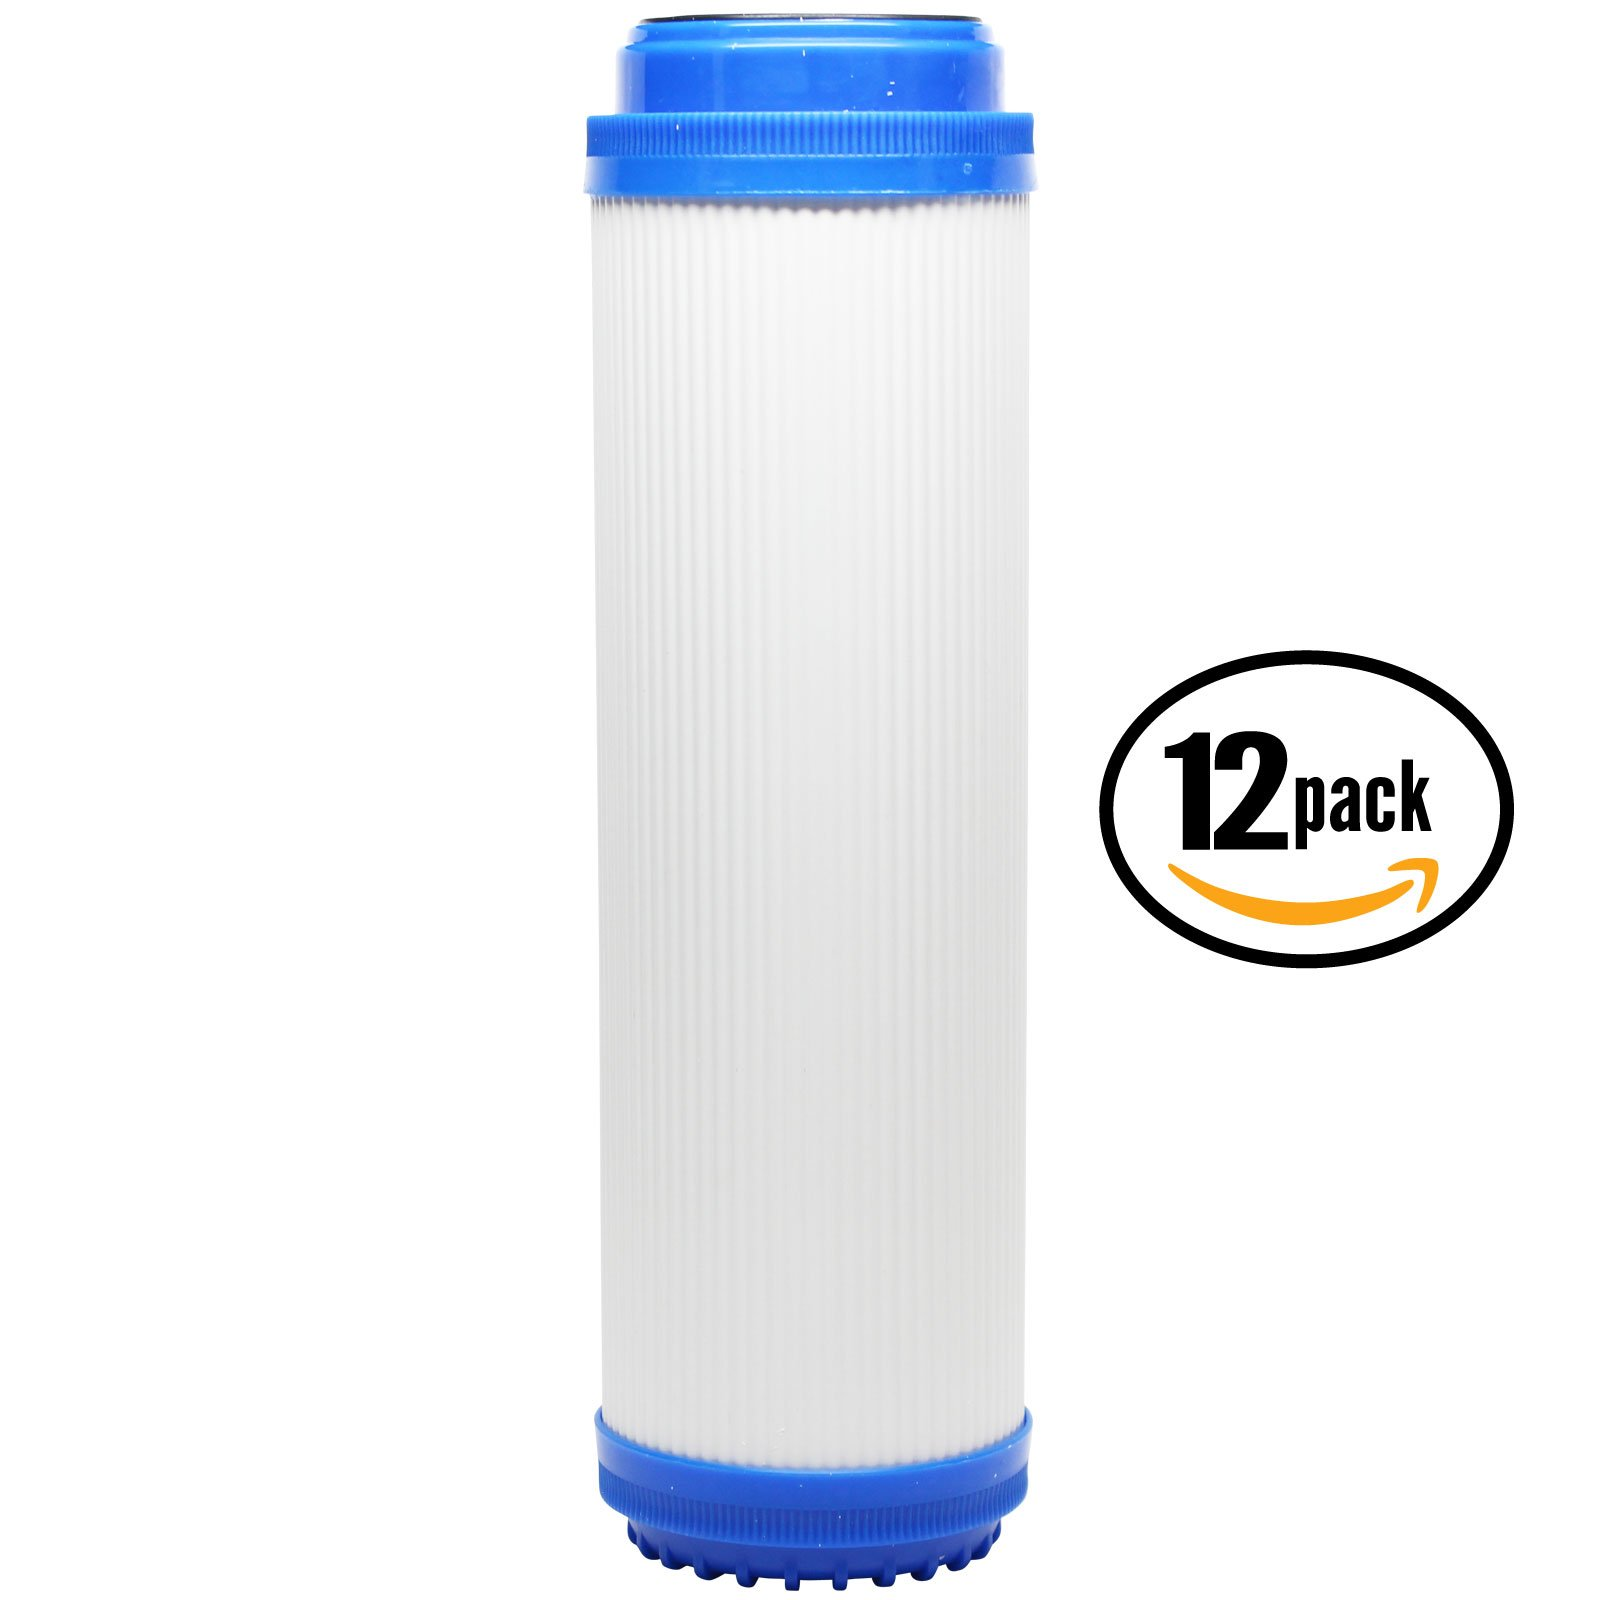 12-Pack Replacement Aqua Pure SST2HB Granular Activated Carbon Filter - Universal 10-inch Cartridge for Aqua Pure 5592010 Stainless Steel Water Filter Housing SST2Hb - Denali Pure Brand